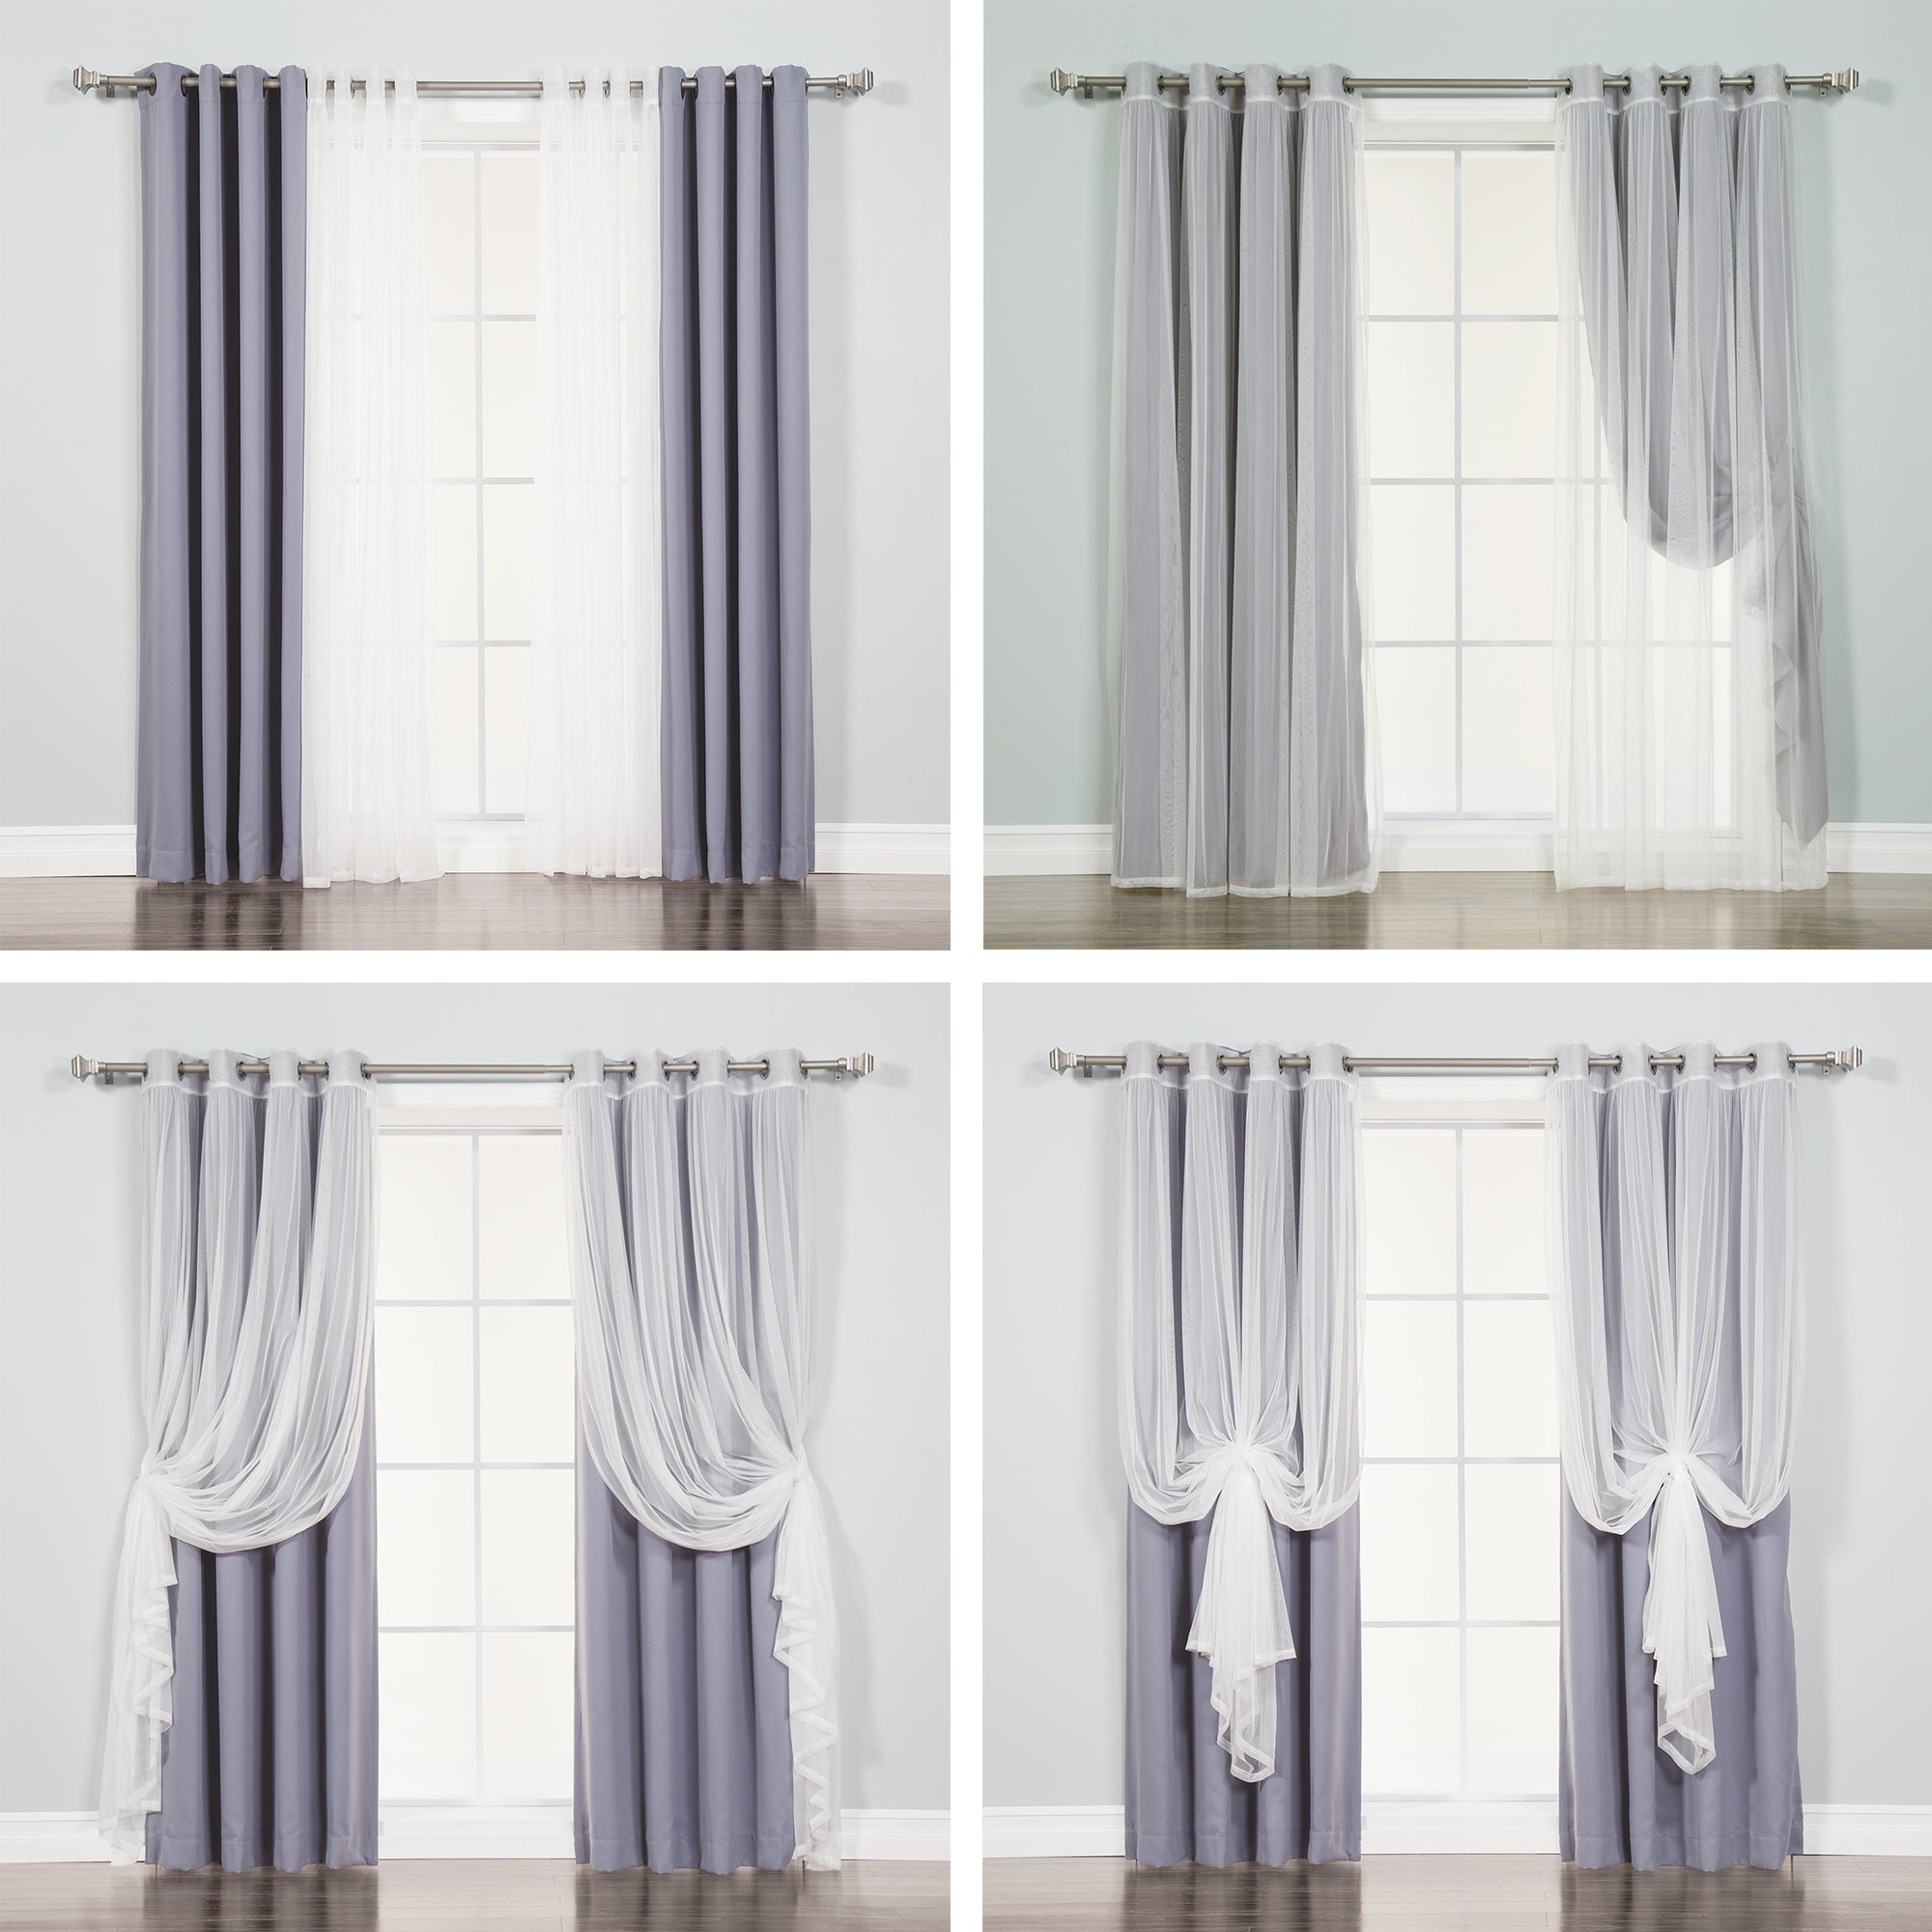 Aurora Home Mix And Match Blackout Blackout Curtains Panel Set (4 Piece) Intended For Mix And Match Blackout Blackout Curtains Panel Sets (View 20 of 20)